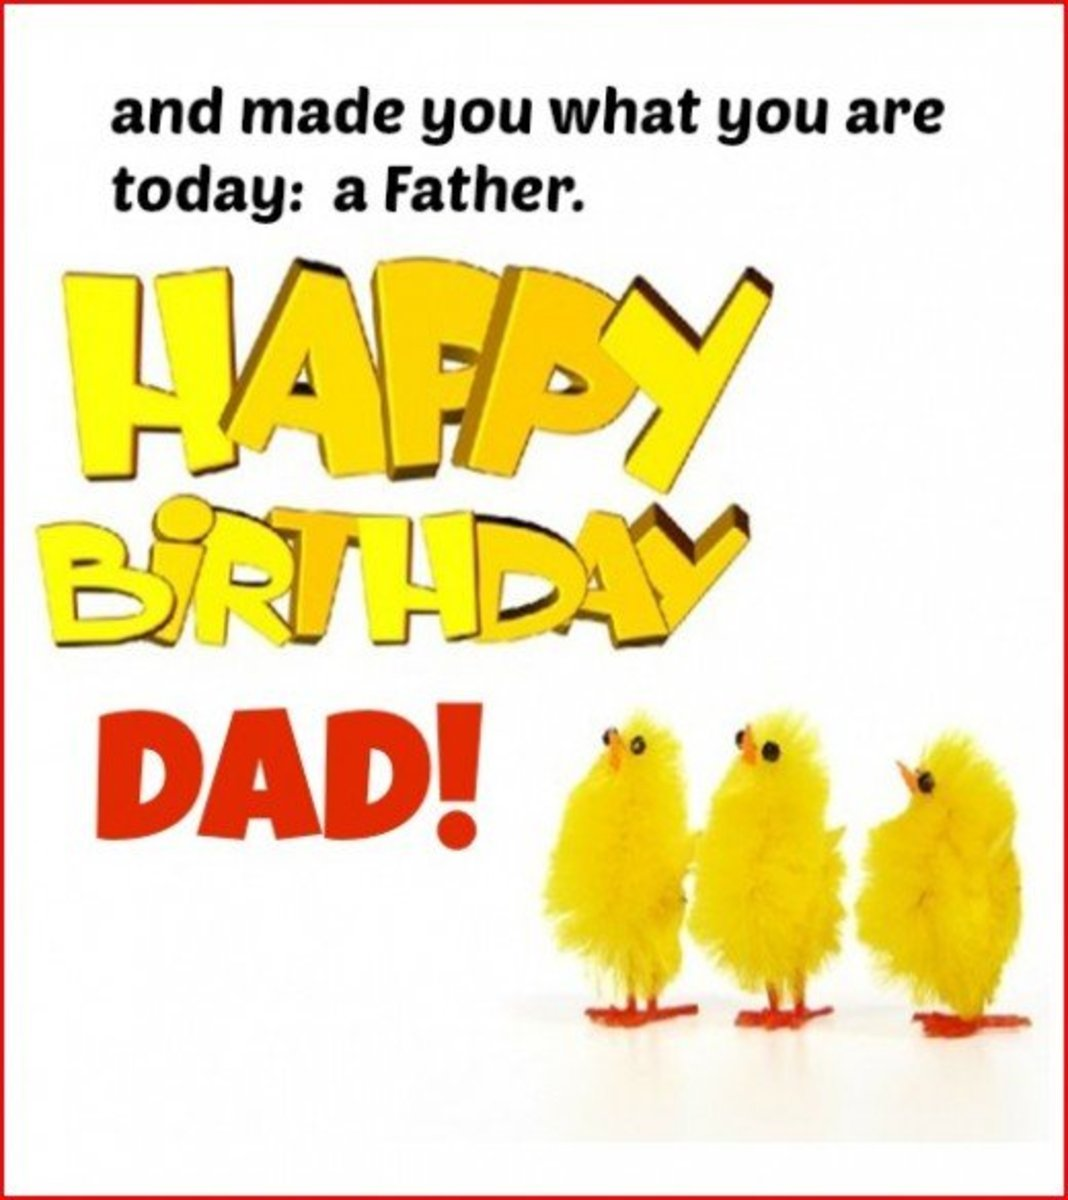 Inside Birthday Card for a Father